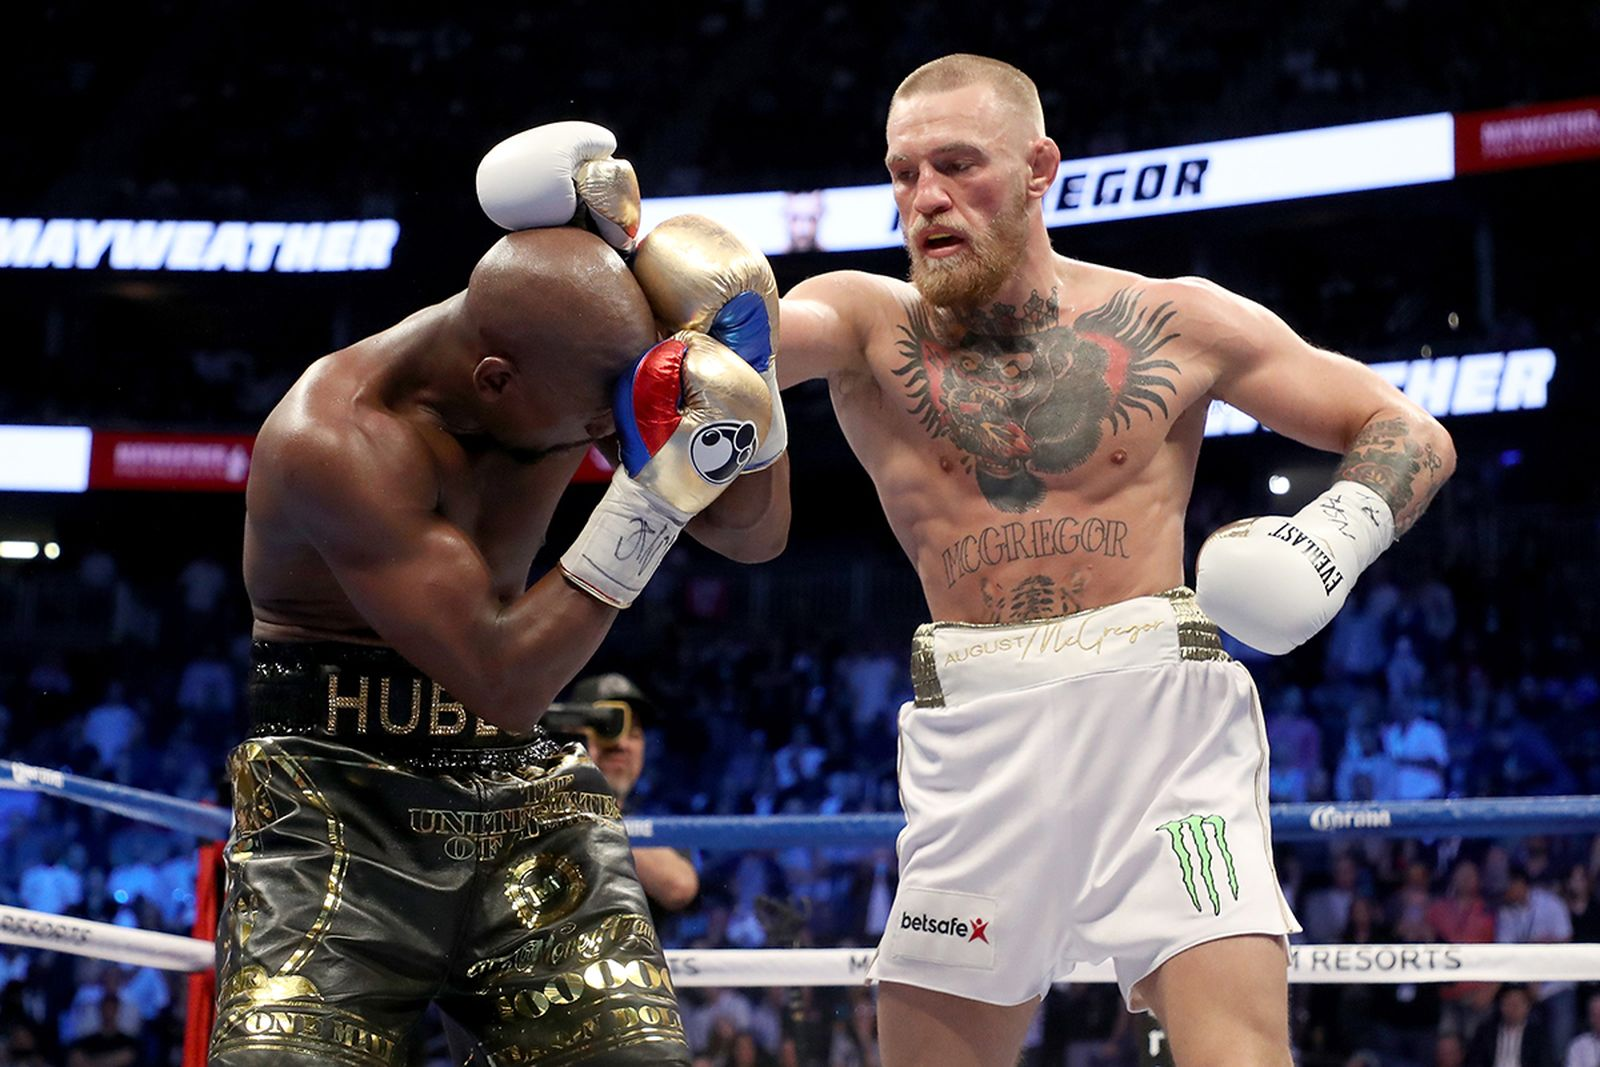 Conor McGregor Floyd Mayweather boxing match